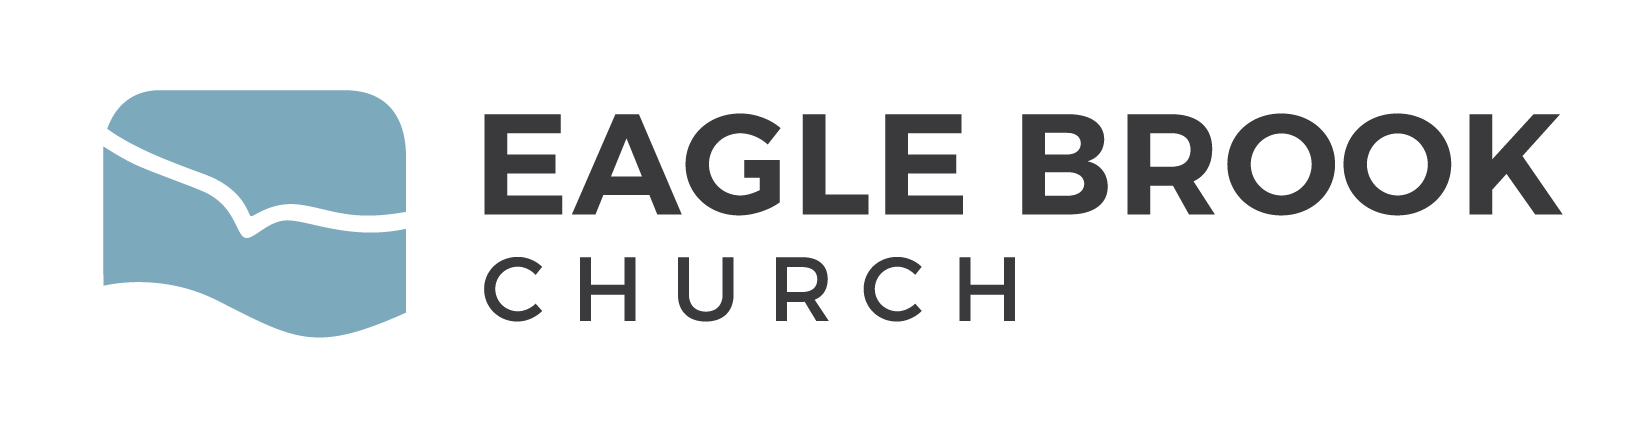 Eagle Brook Church - Wayzata Campus